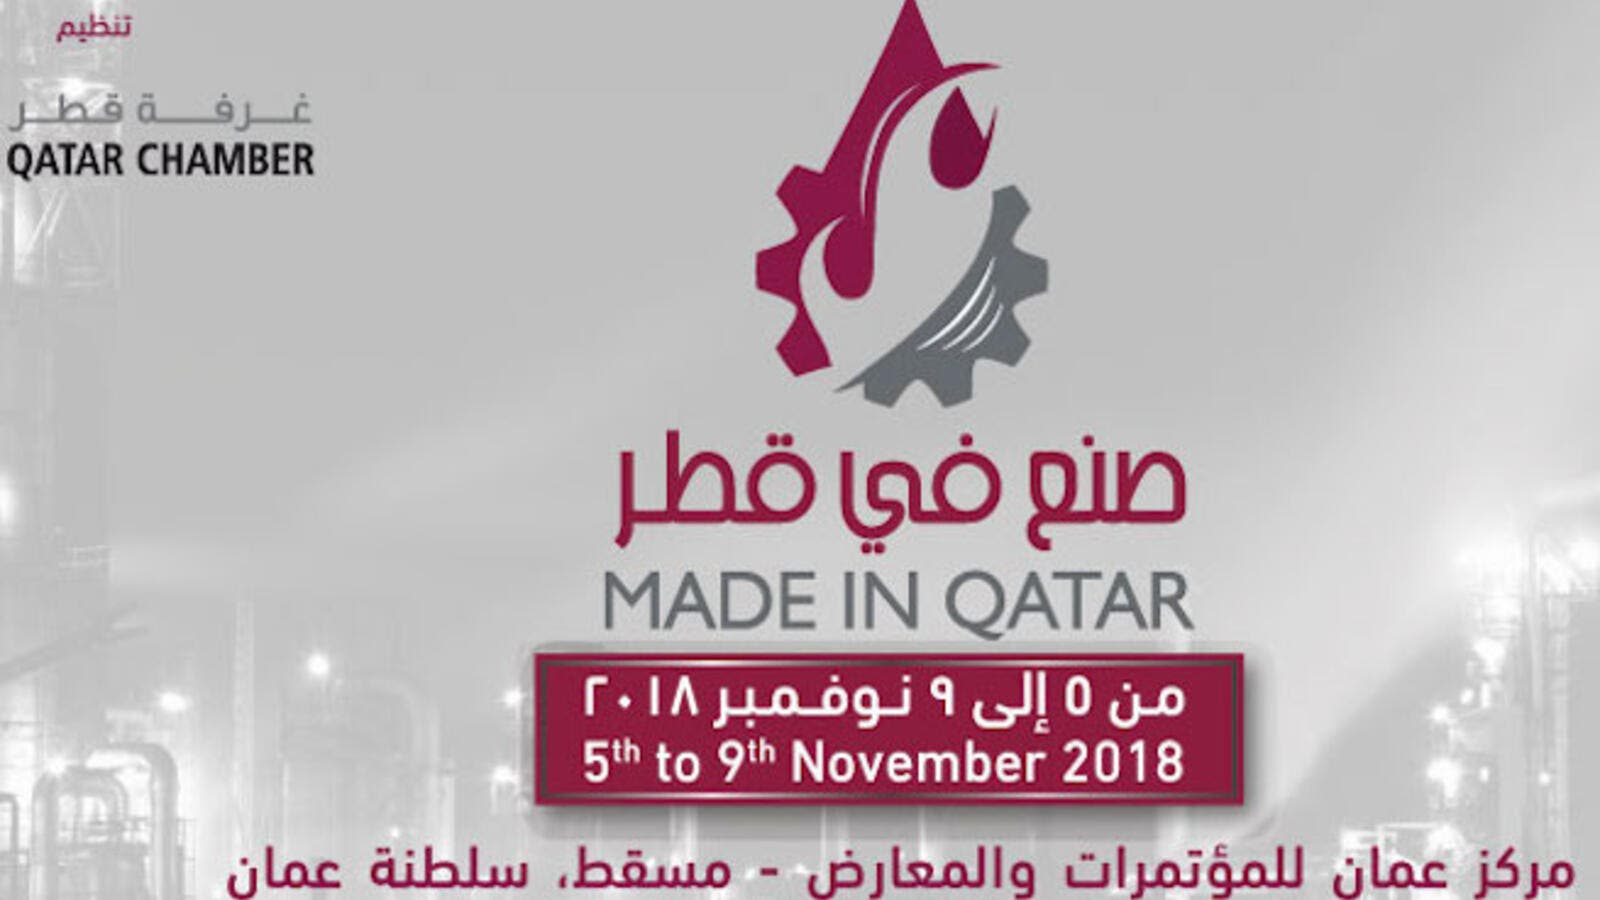 Made in Qatar' Oman Edition Offers Mega Investments Ops via